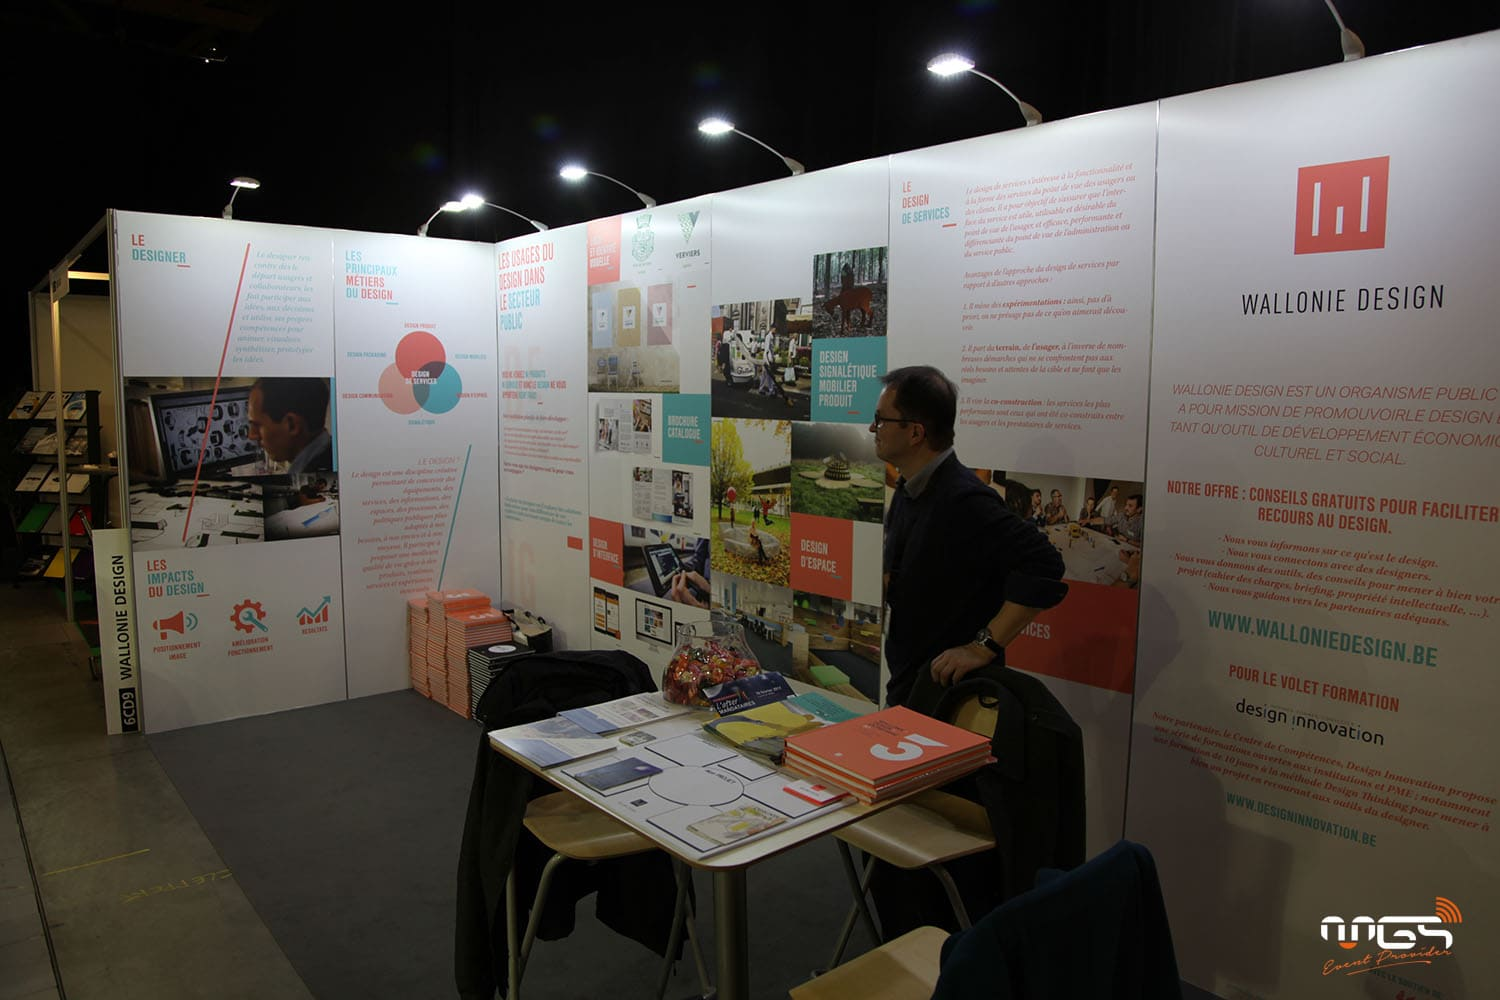 Conception du stand wallonie design par MGS